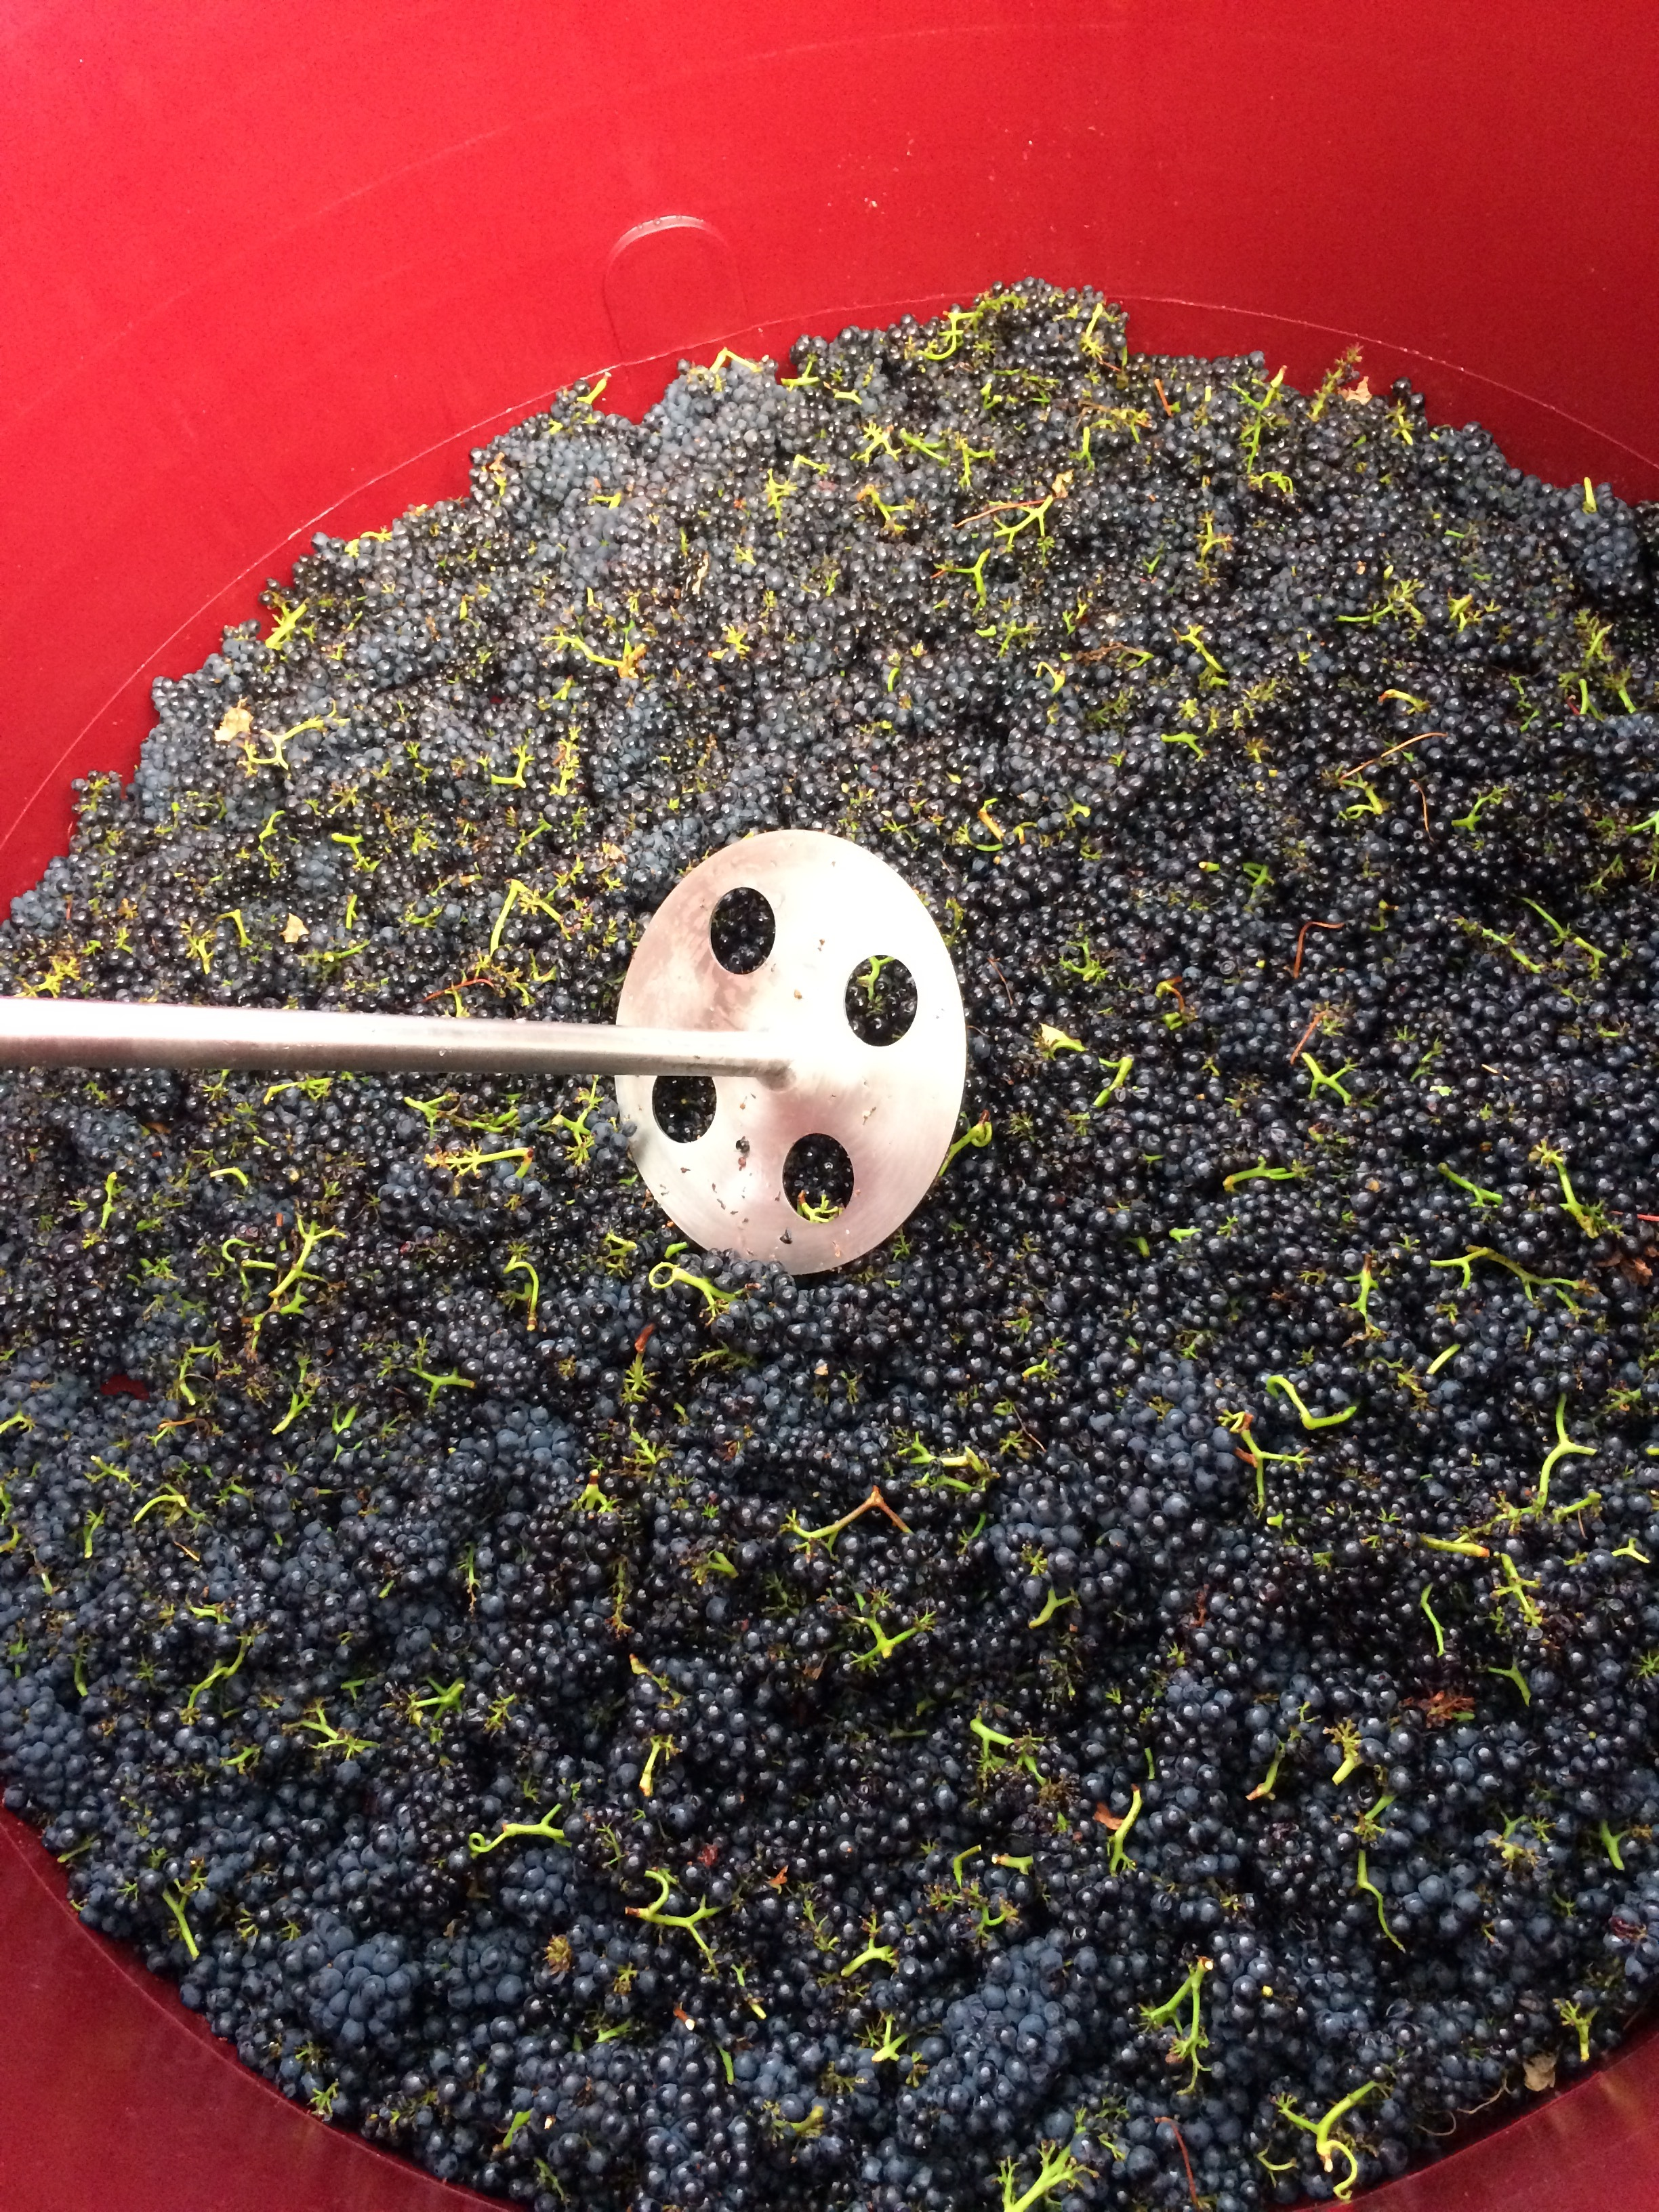 This is Pinot Noir clone 114, note the small, tight bunches and small berries. Some of the fruit was kept as whole bunches to add more tannin structure to the wine. Pinot Noir yields were down this year due to a cool wet Spring and uneven Summer temperatures.